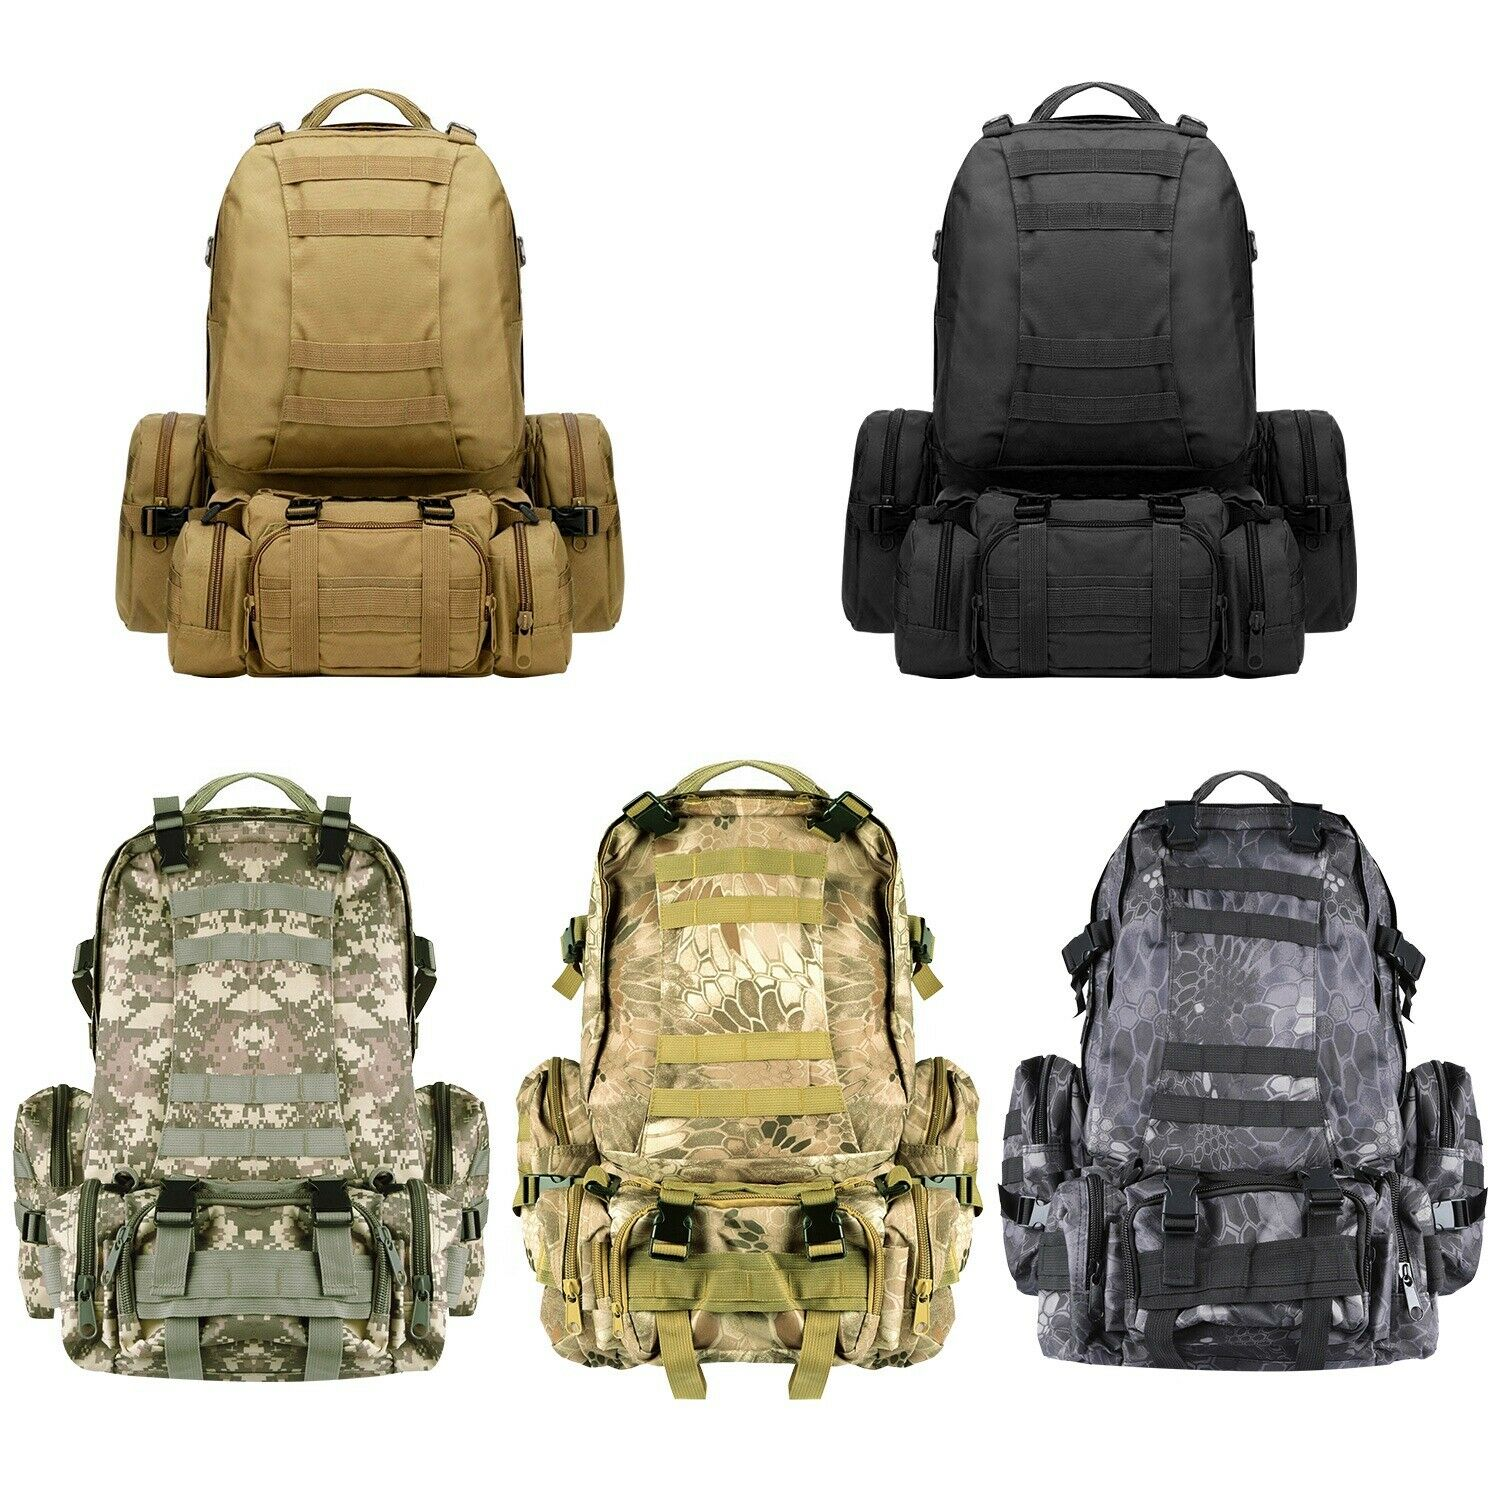 56L 4in1 Molle Outdoor Military Tactical Bag Camping Hiking Trekking B...